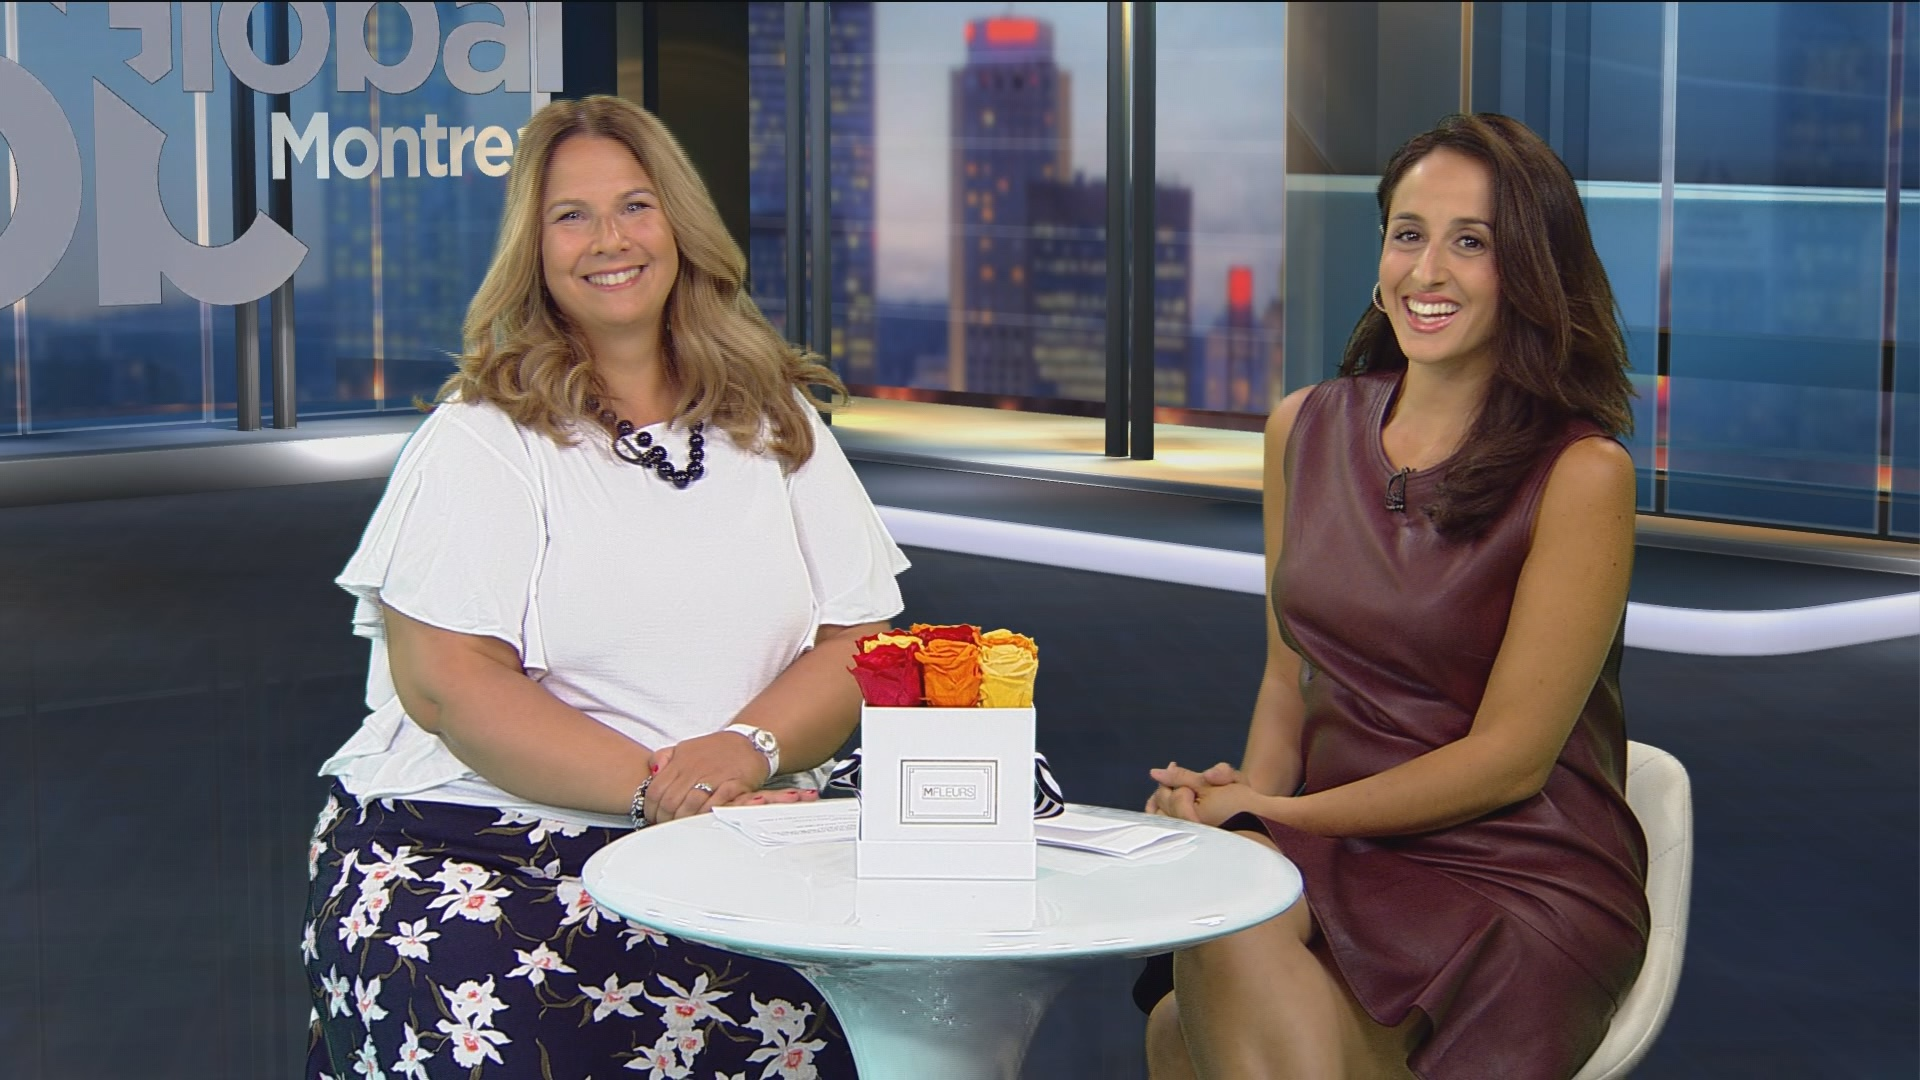 Sherri is talking with Laura Casella of Global News Morning about recognizing the signs of job burnout